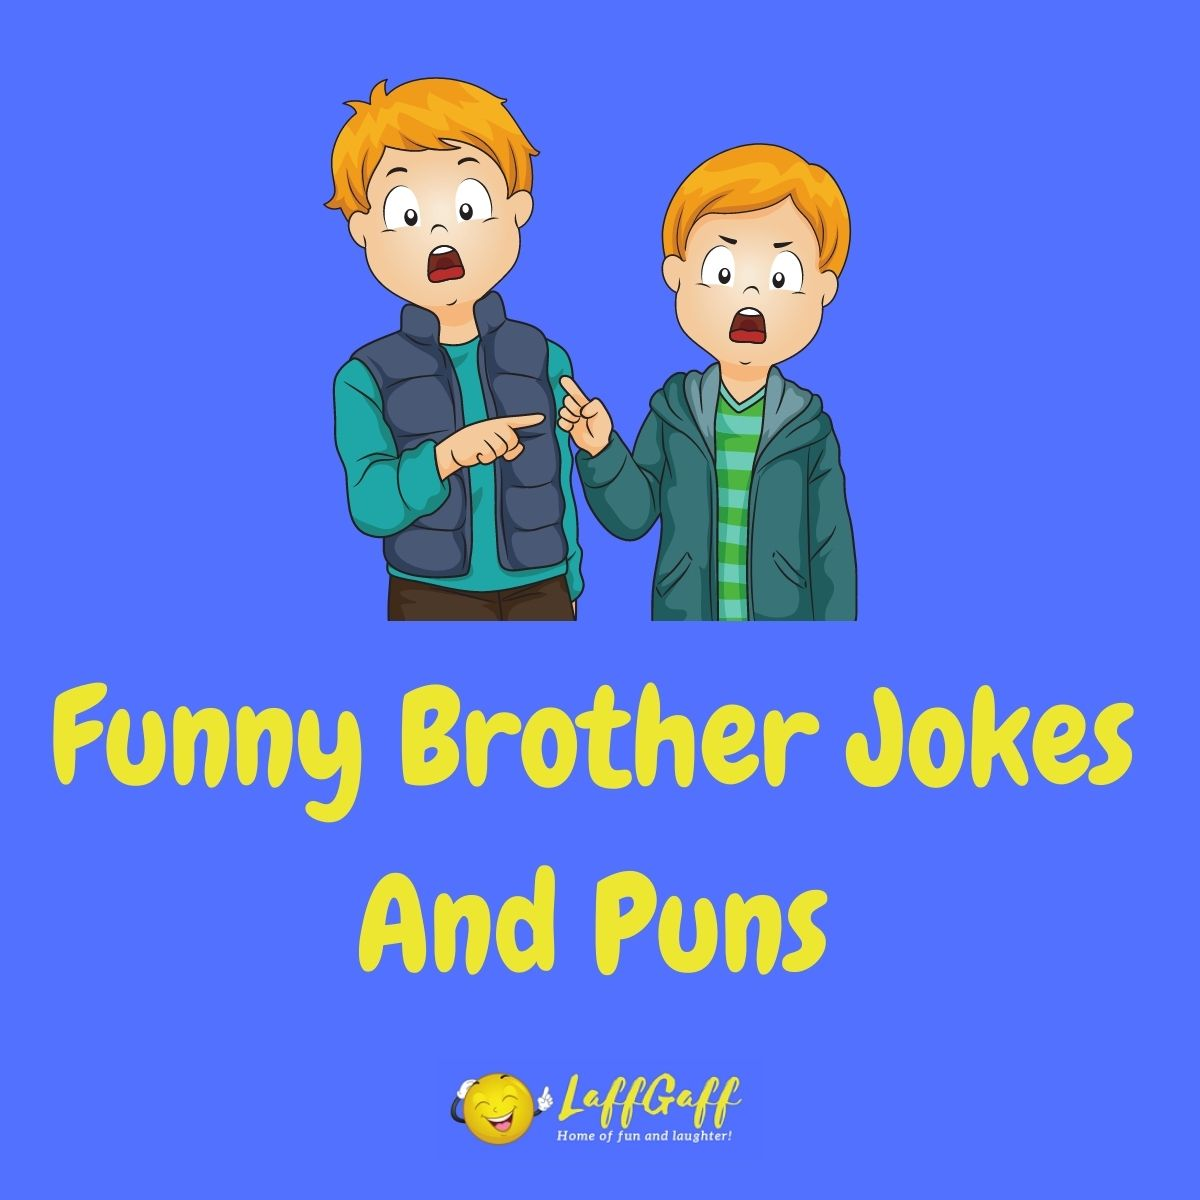 Featured image for a page of funny brother jokes and puns.